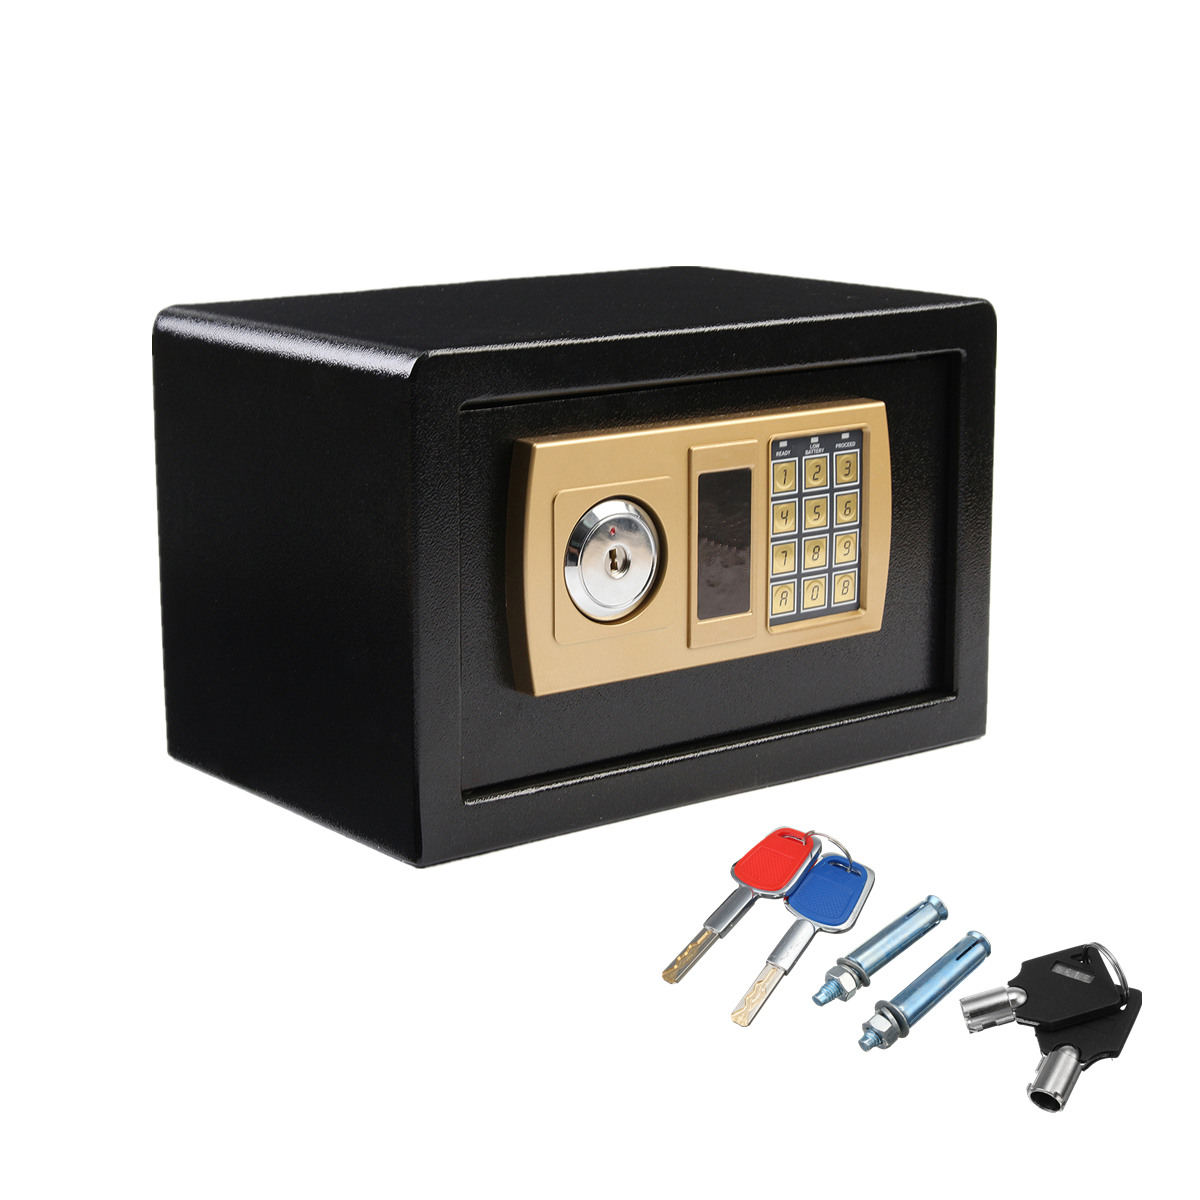 310x200x200mm-digital-safe-box-for-fire-proof-ideal-security-secret-box-electronic-password-safe-for-jewellery-gold-caja-fuerte